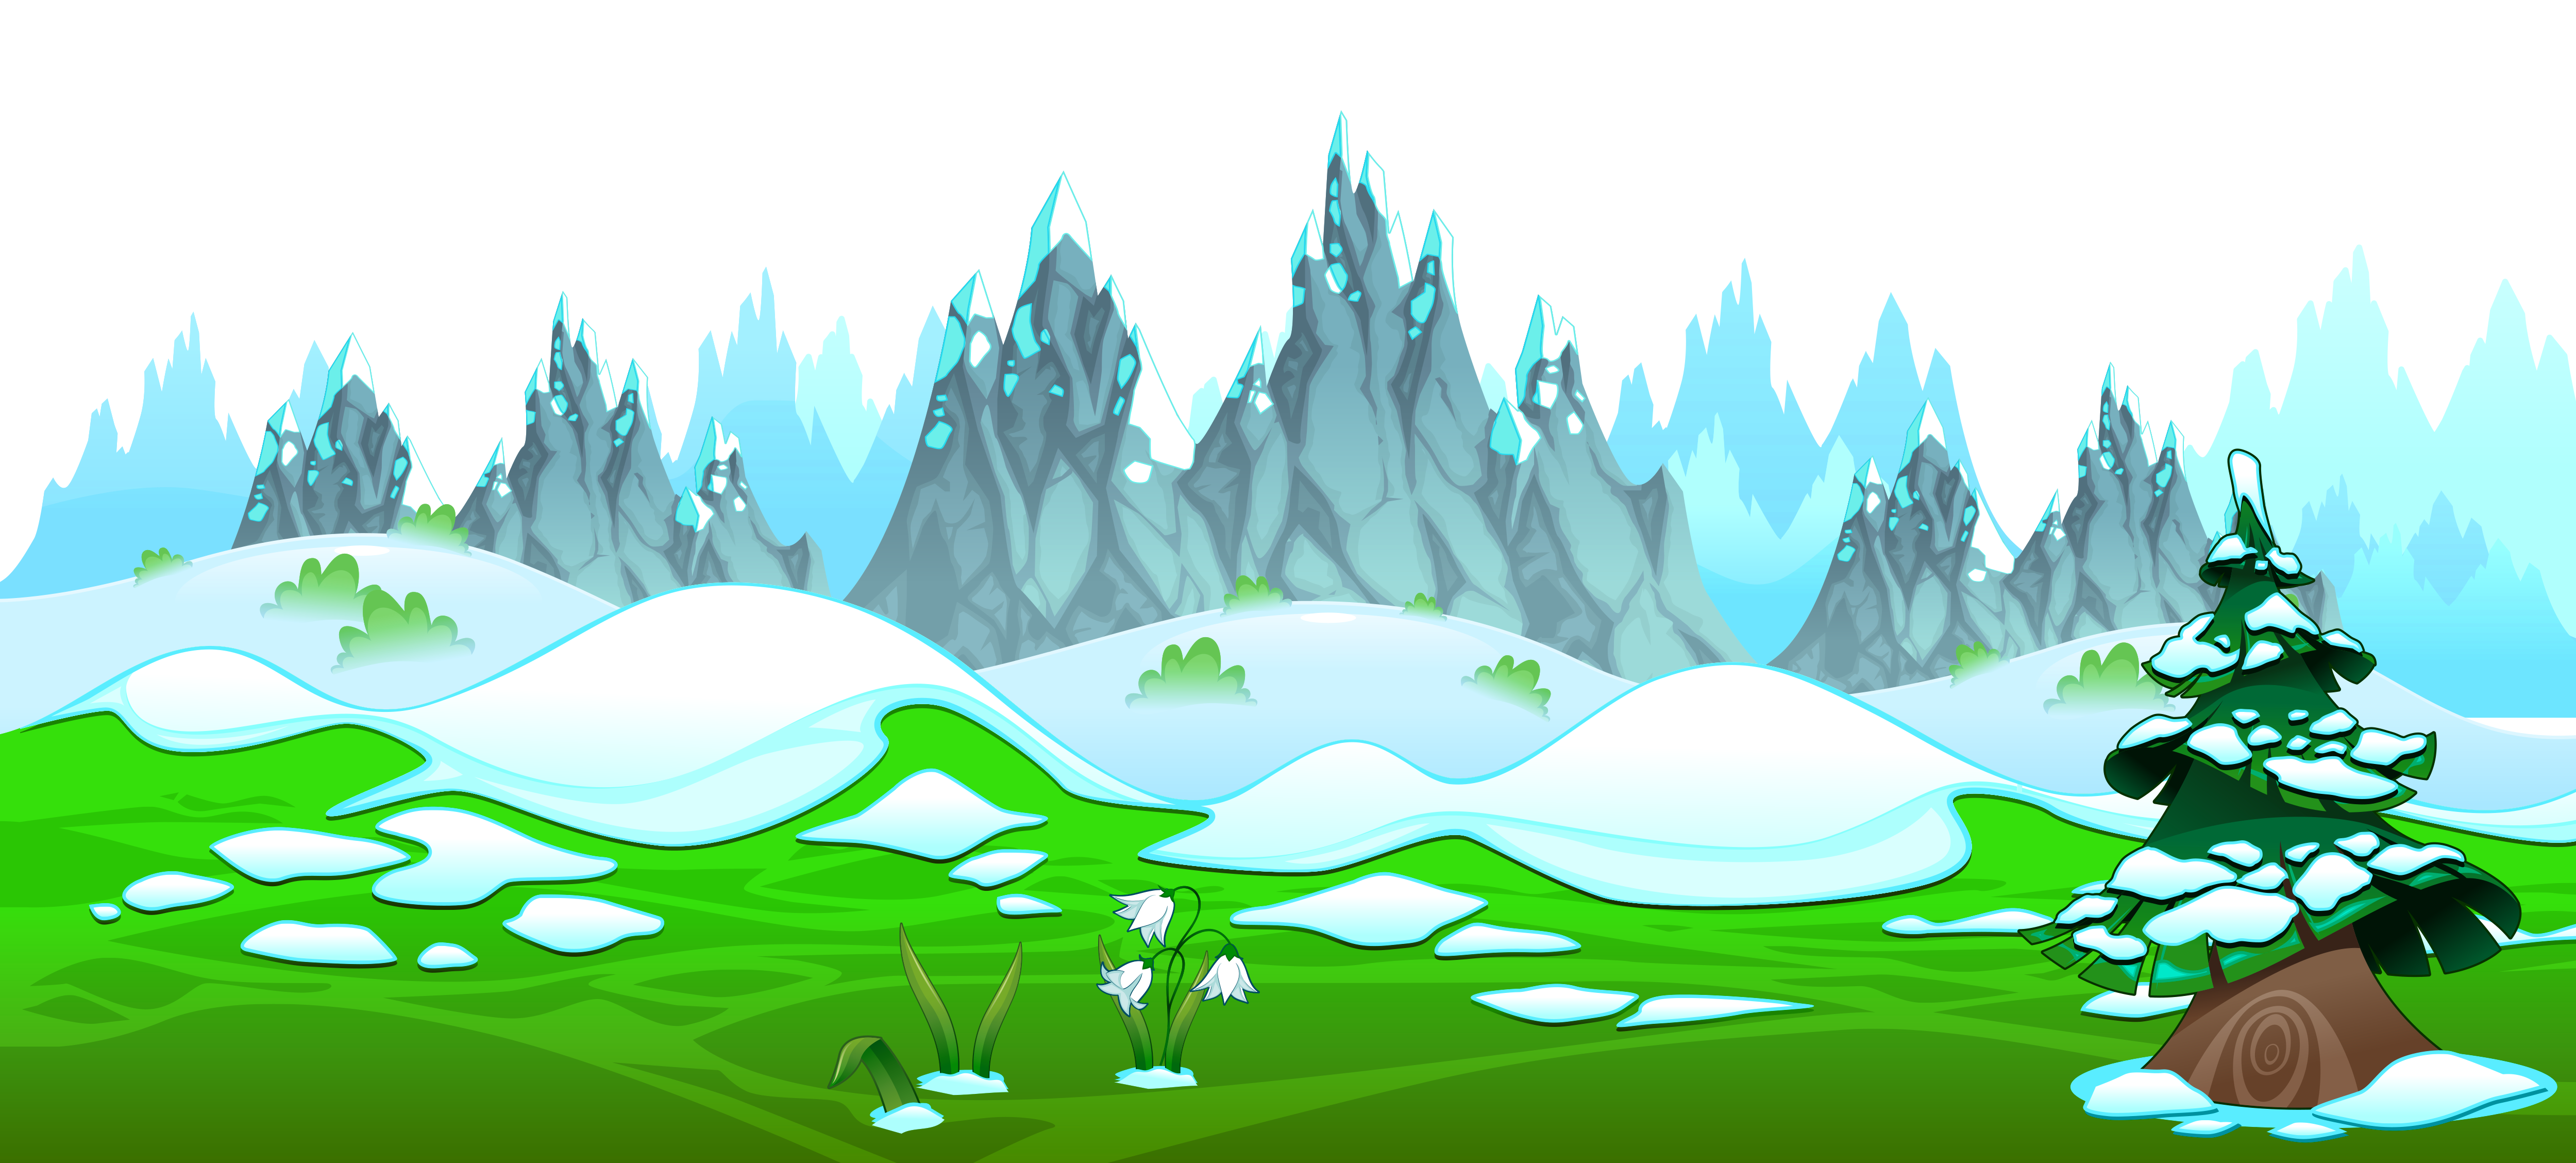 Clipart mountains snow mountain. Color jokingart com download